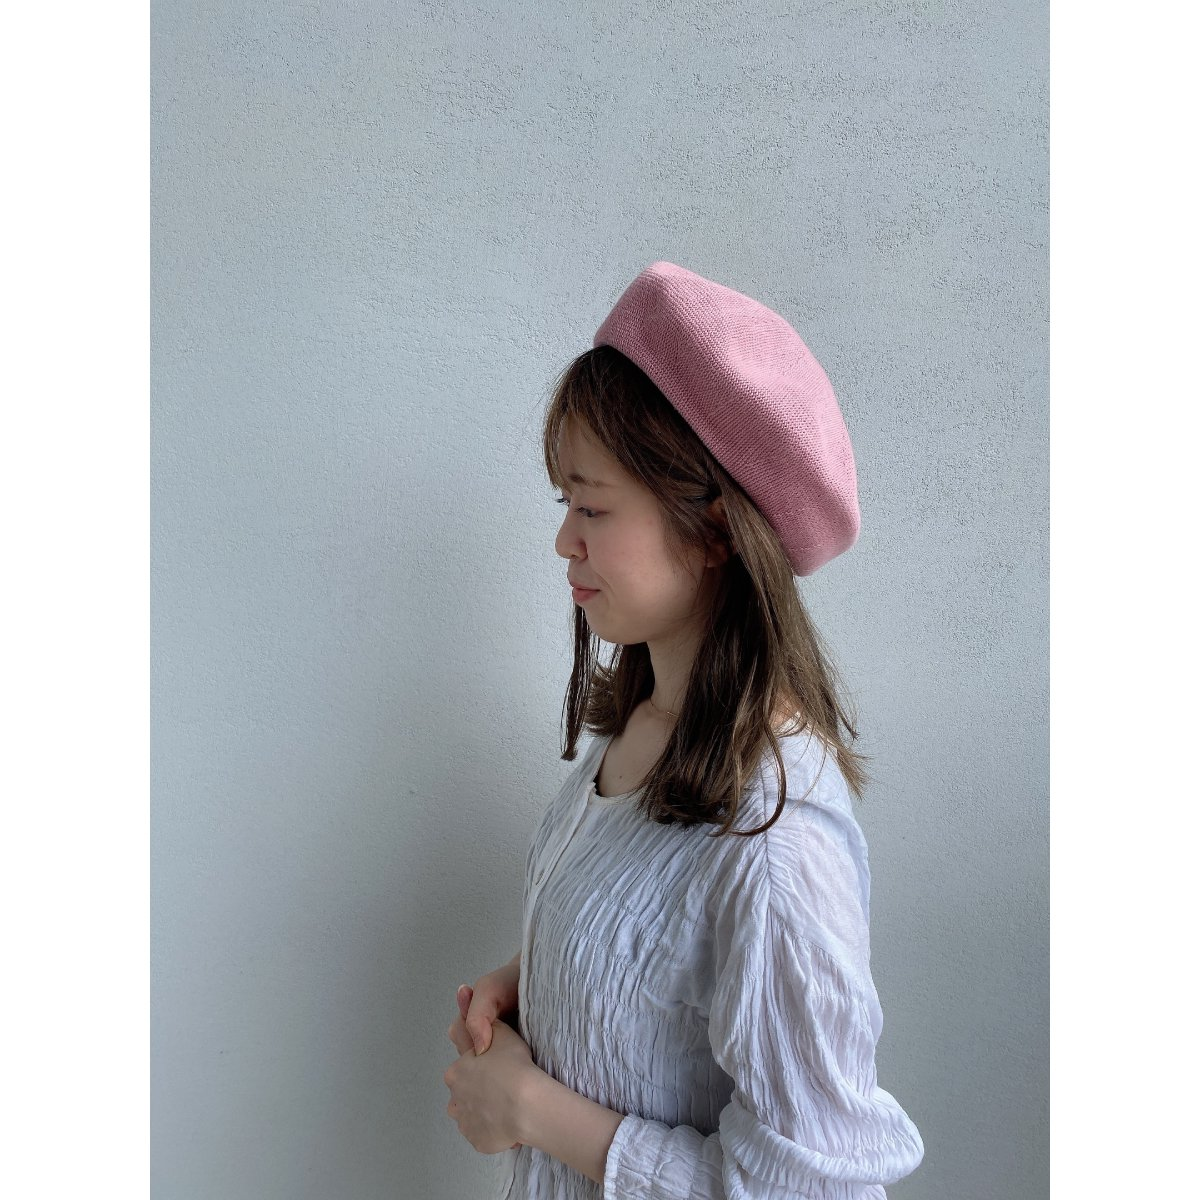 Sophie Thermo Beret 2 詳細画像4